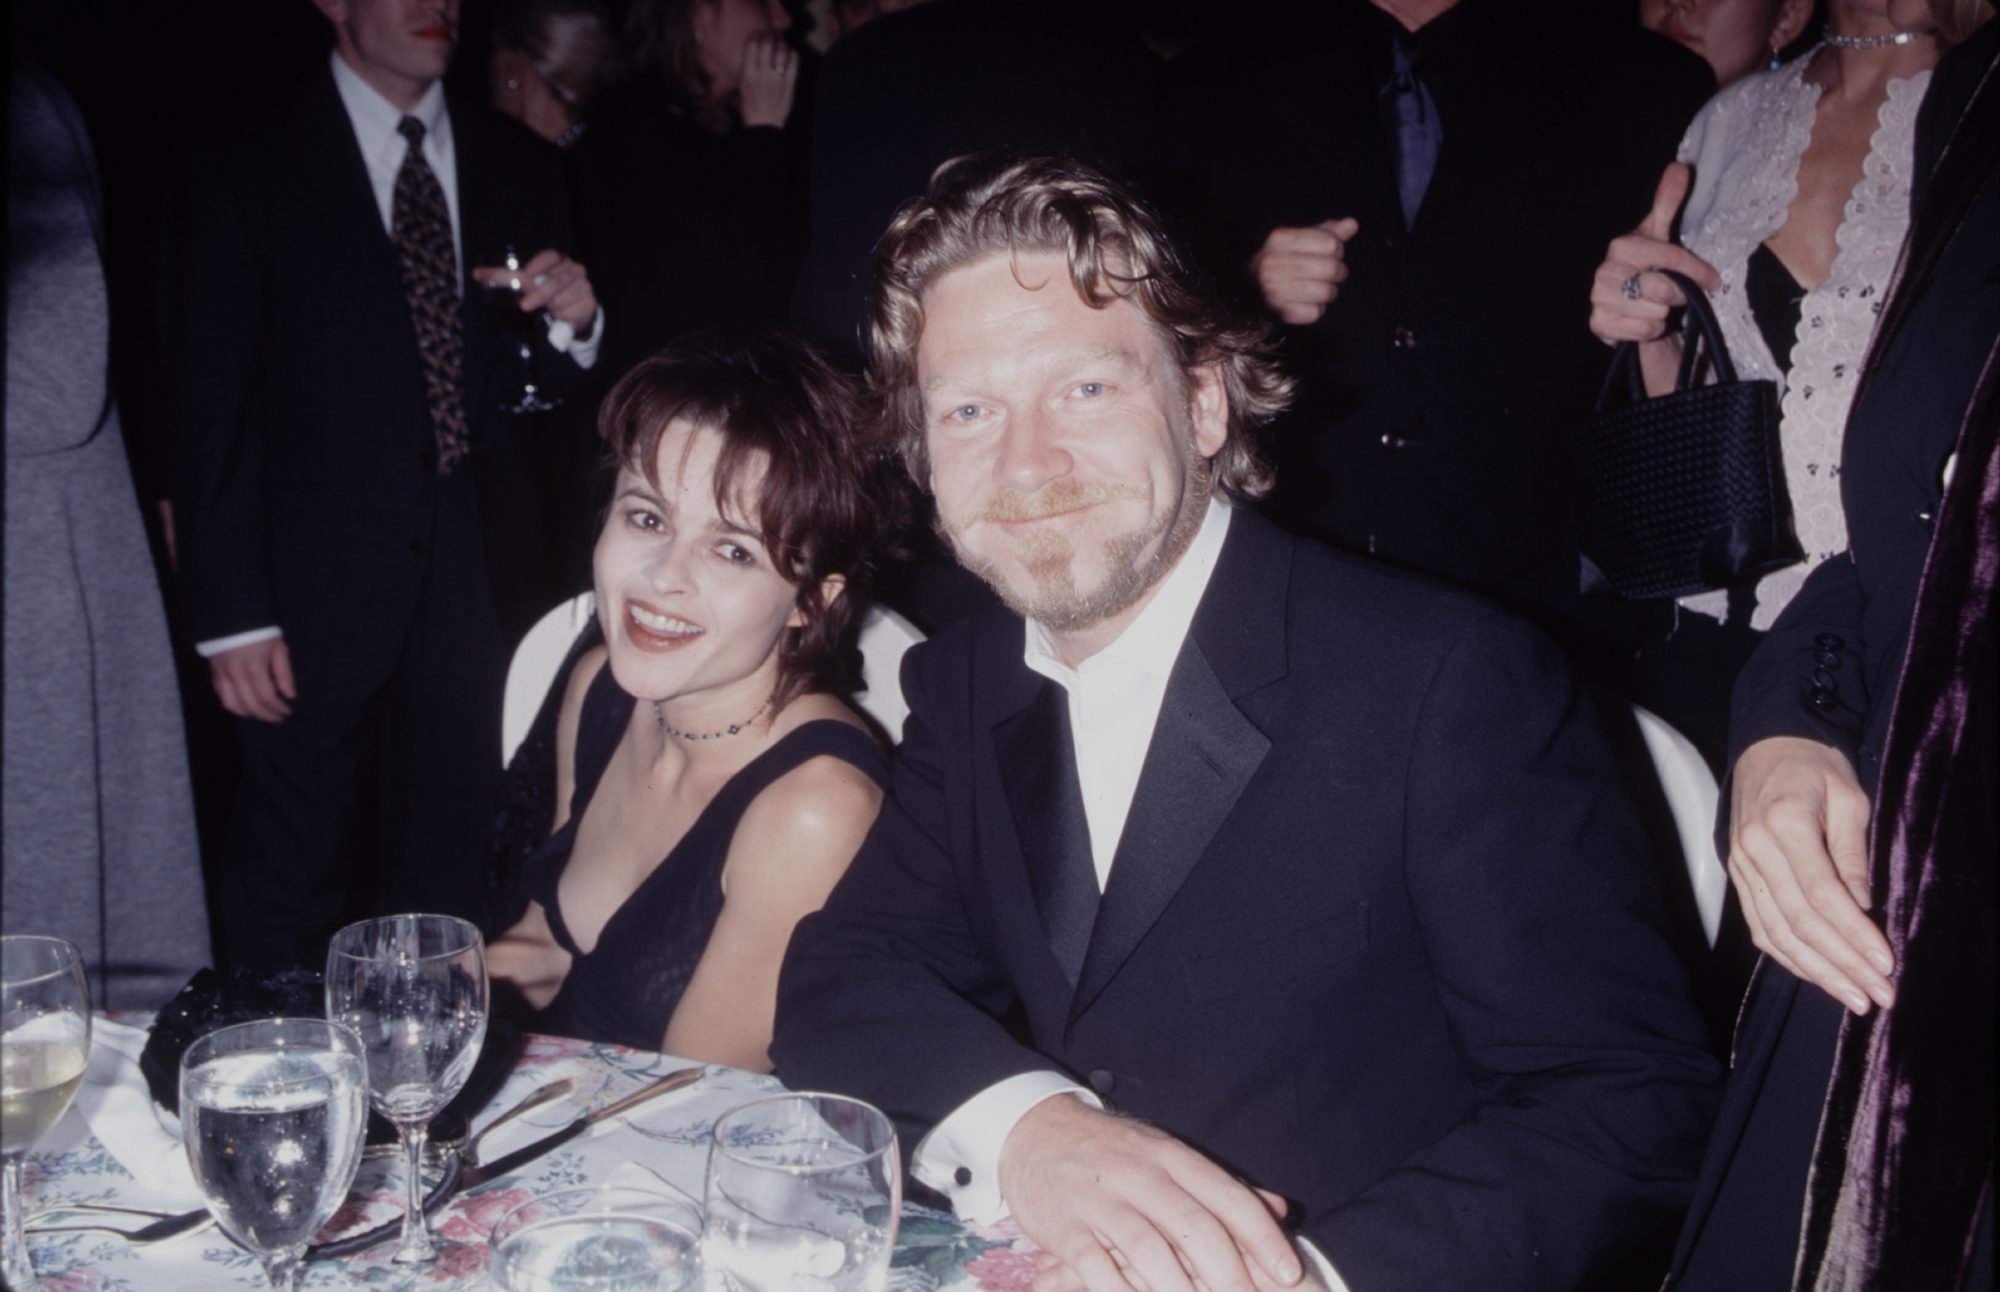 Kenneth Branagh who is he presently dating?